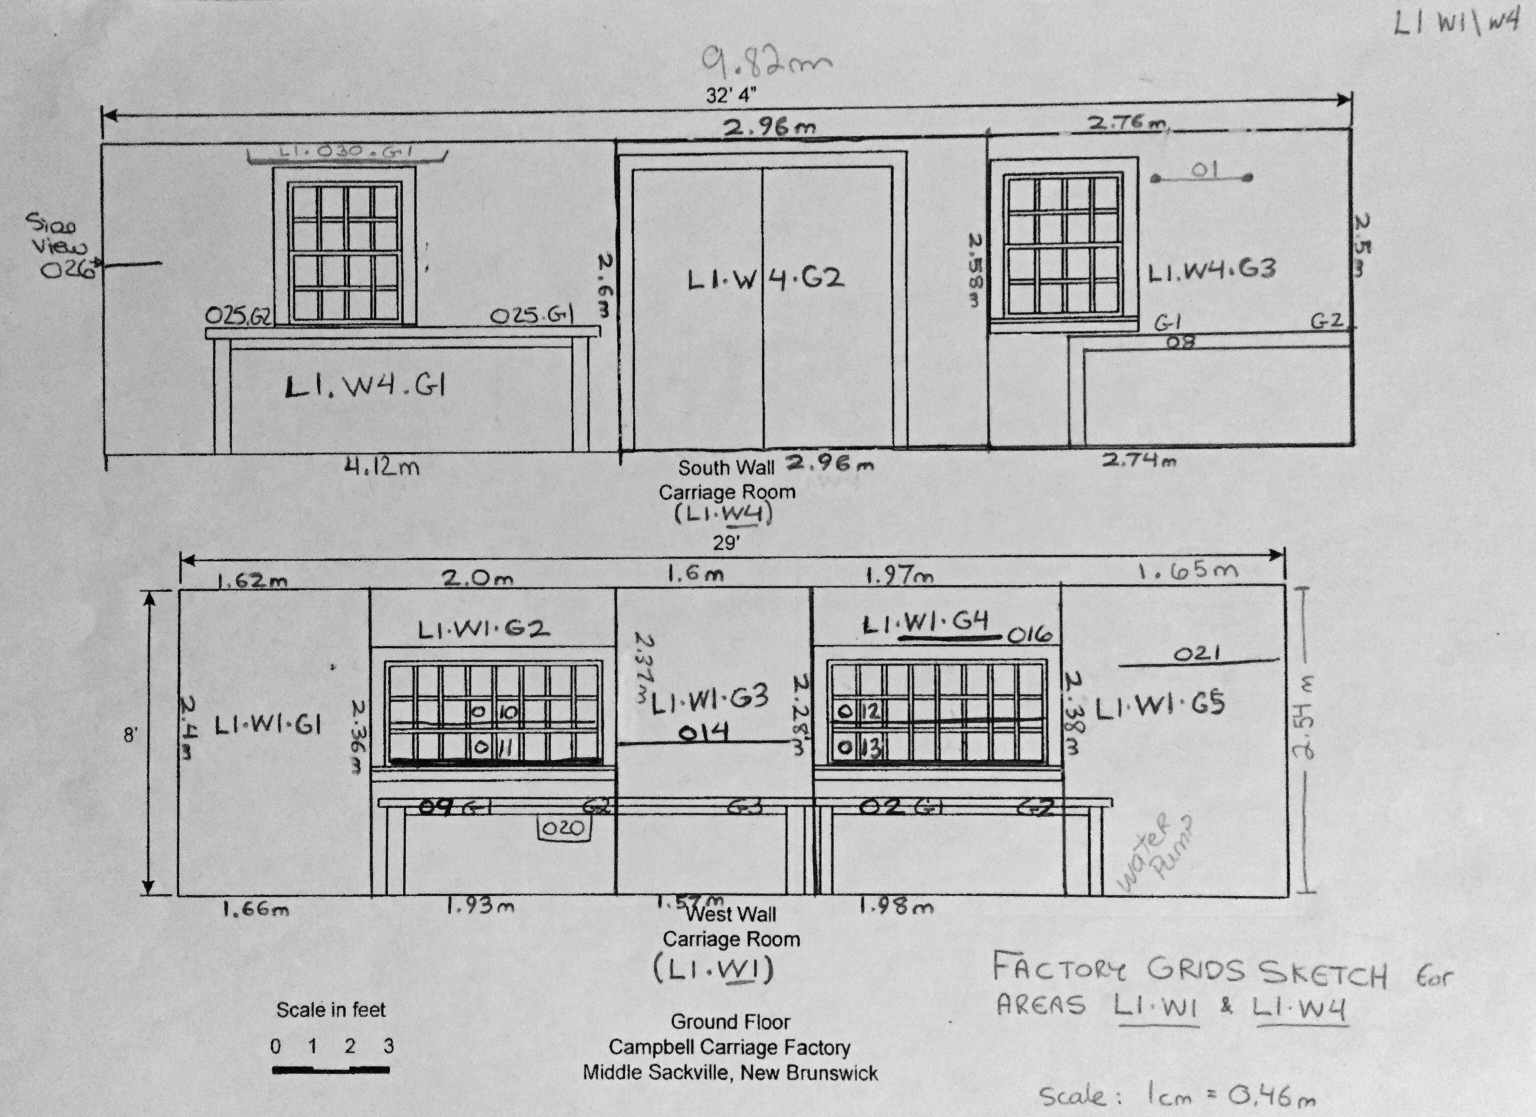 Drawing showing plan for grid codes at Campbell Carriage Factory